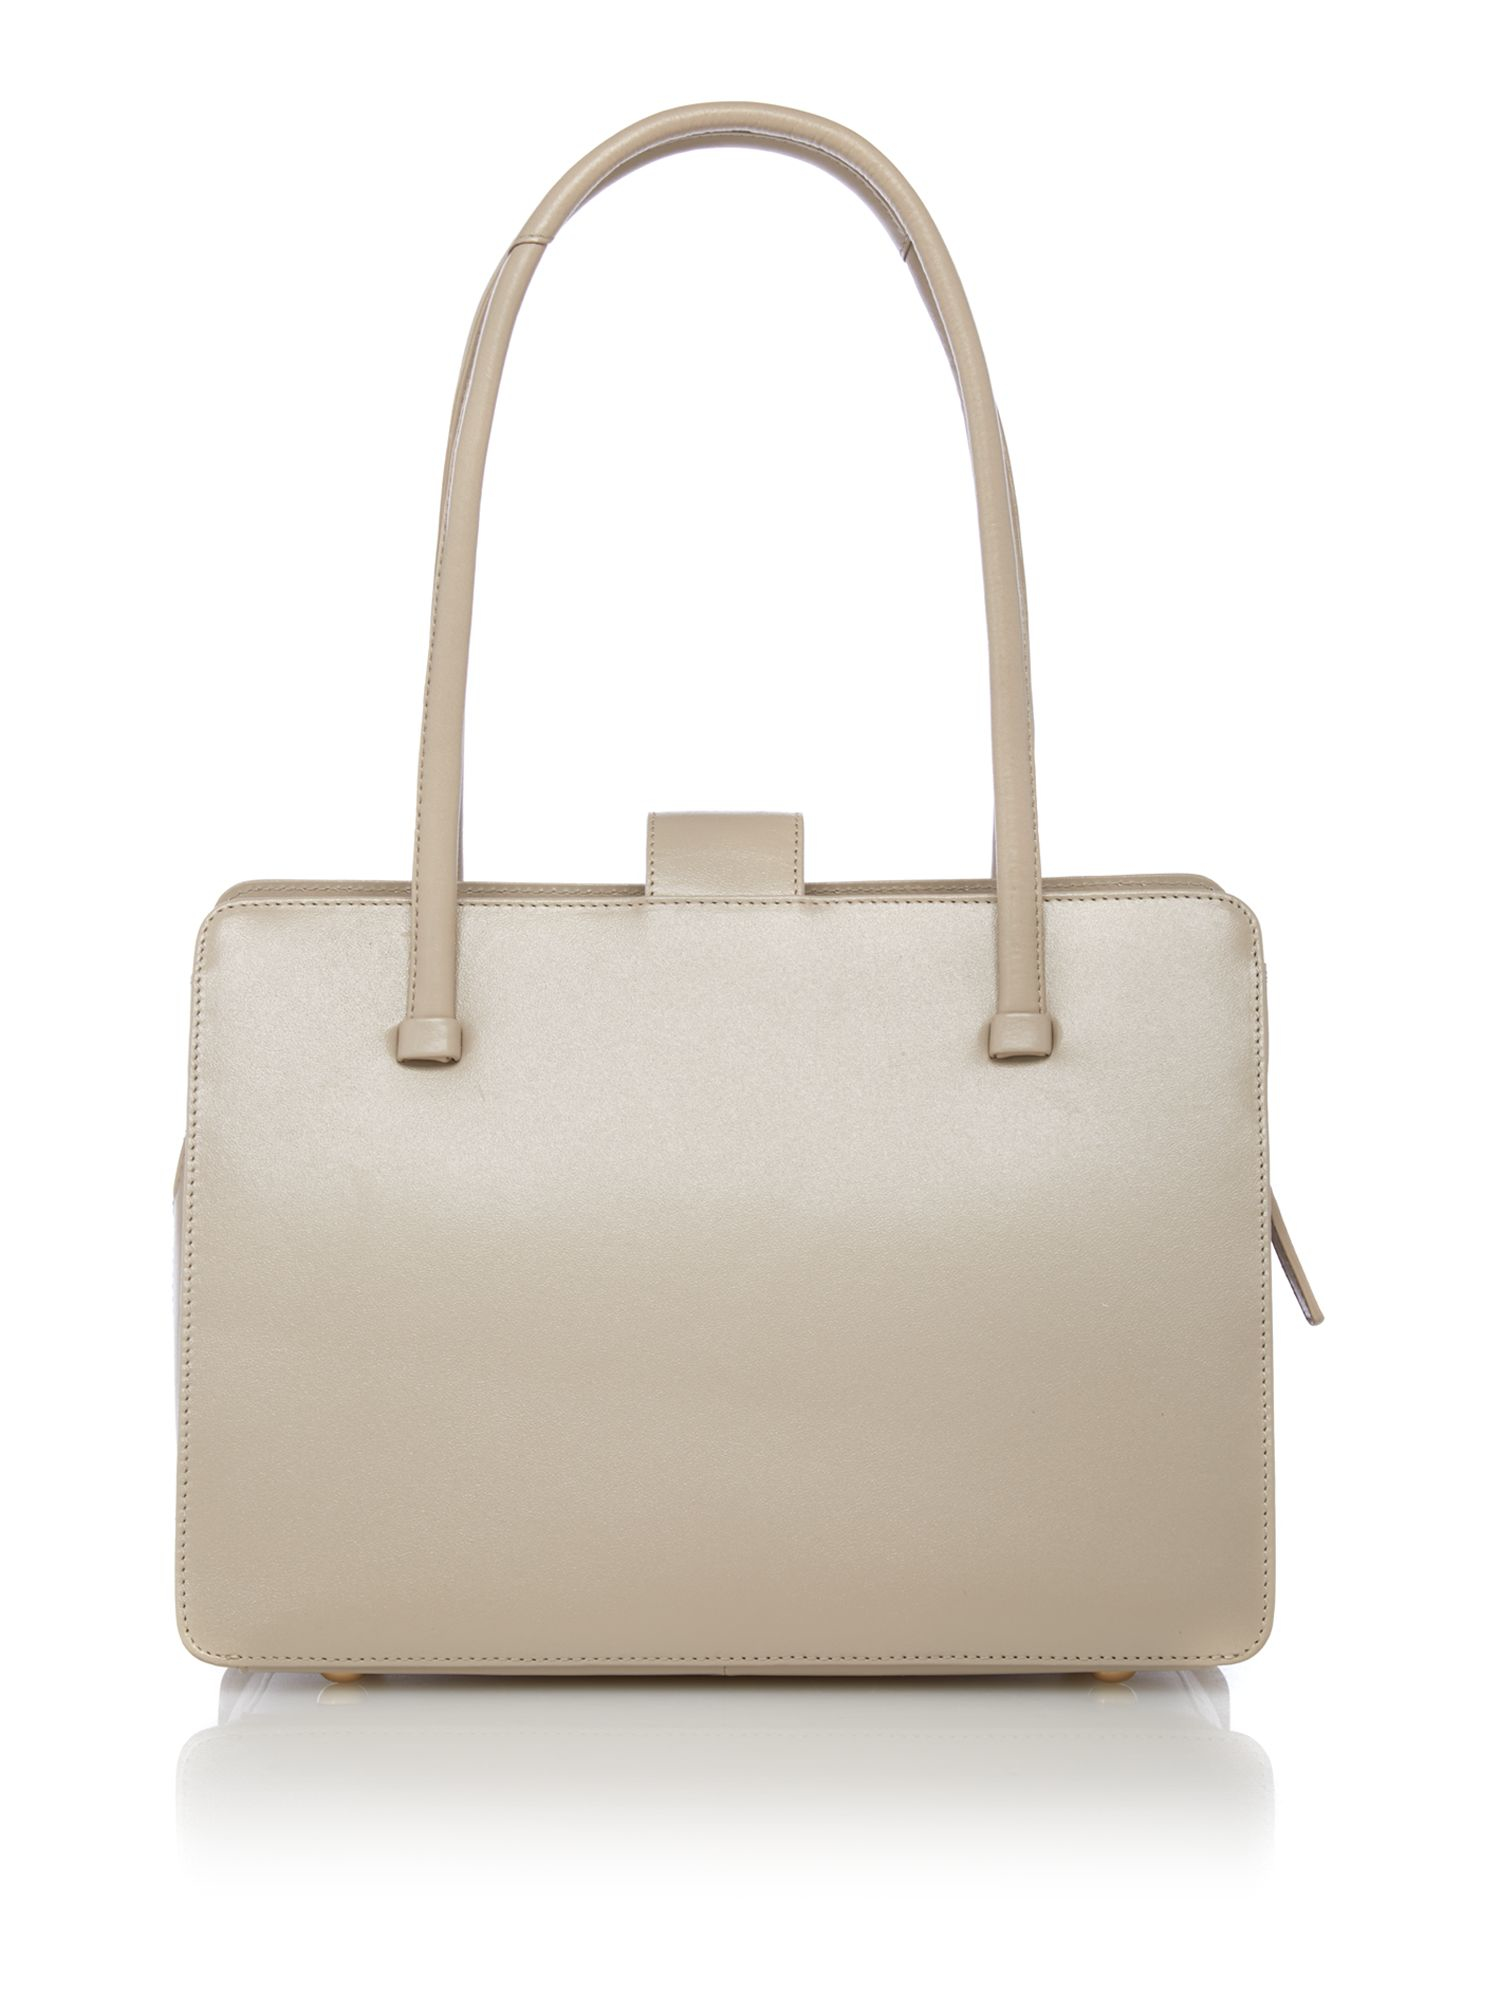 Radley Saville Row Large Neutral Shoulder Bag in Natural | Lyst